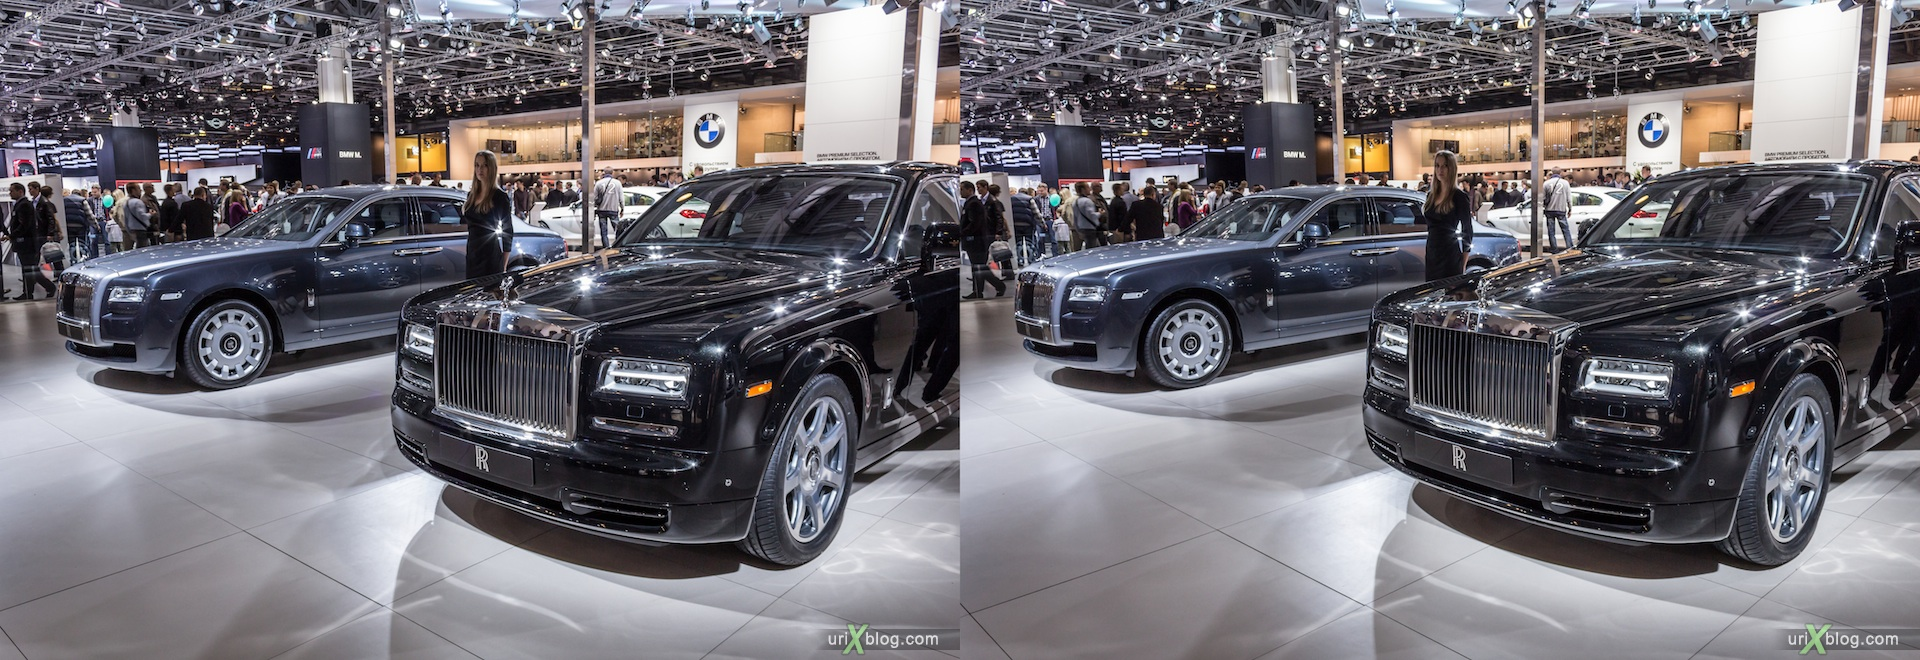 2012, Rolls Royce, девушка, модель, girl, model, Moscow International Automobile Salon, auto show, 3D, stereo pair, cross-eyed, crossview